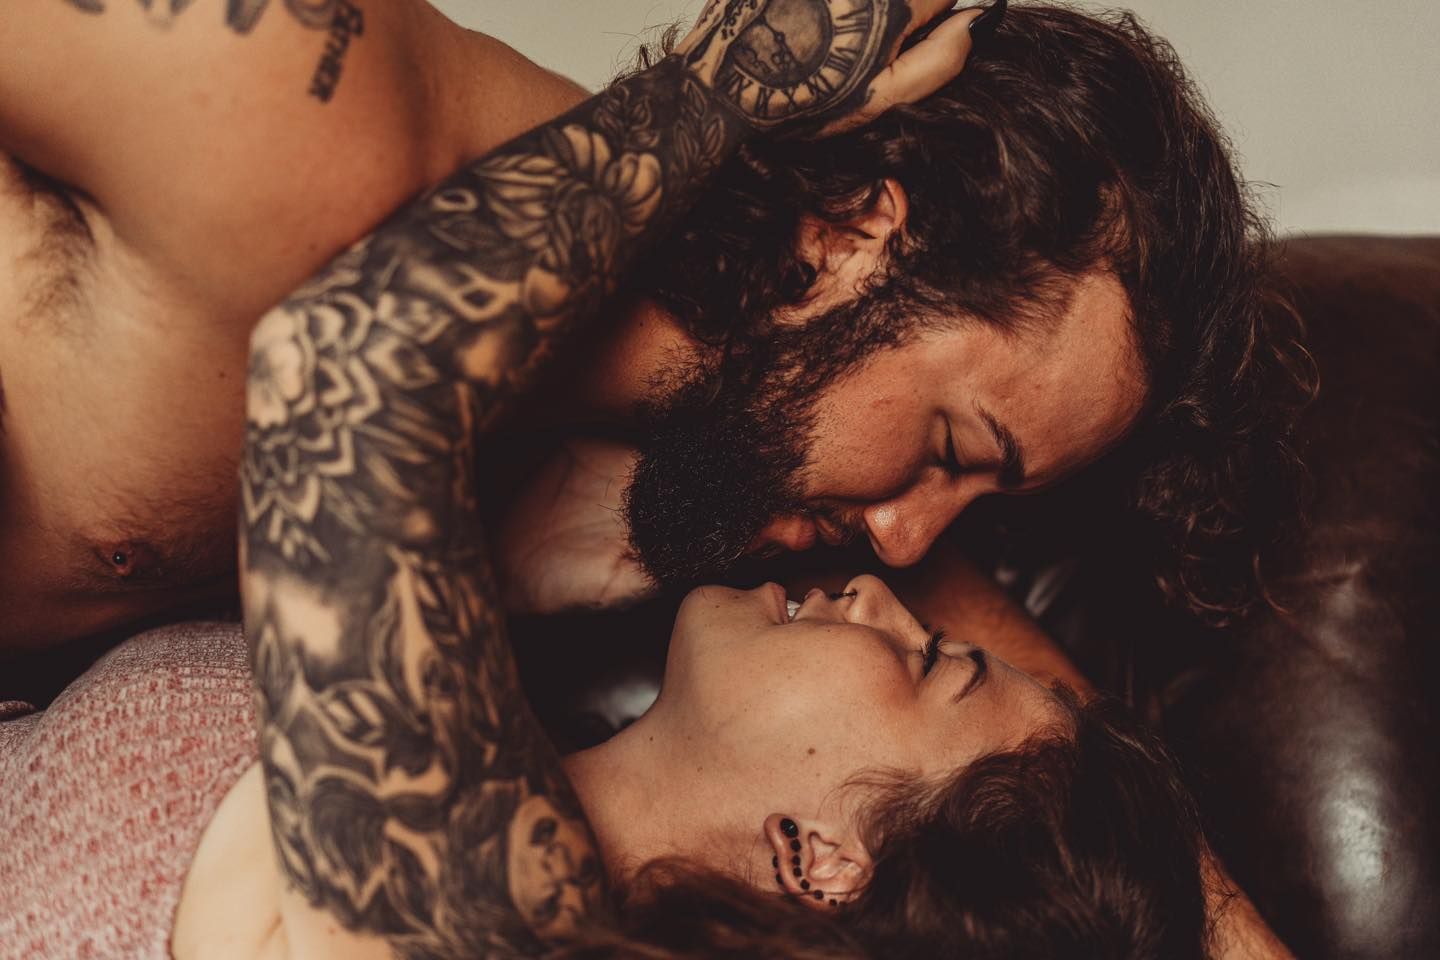 This Couple Photoshoot Is Too Hot To Handle